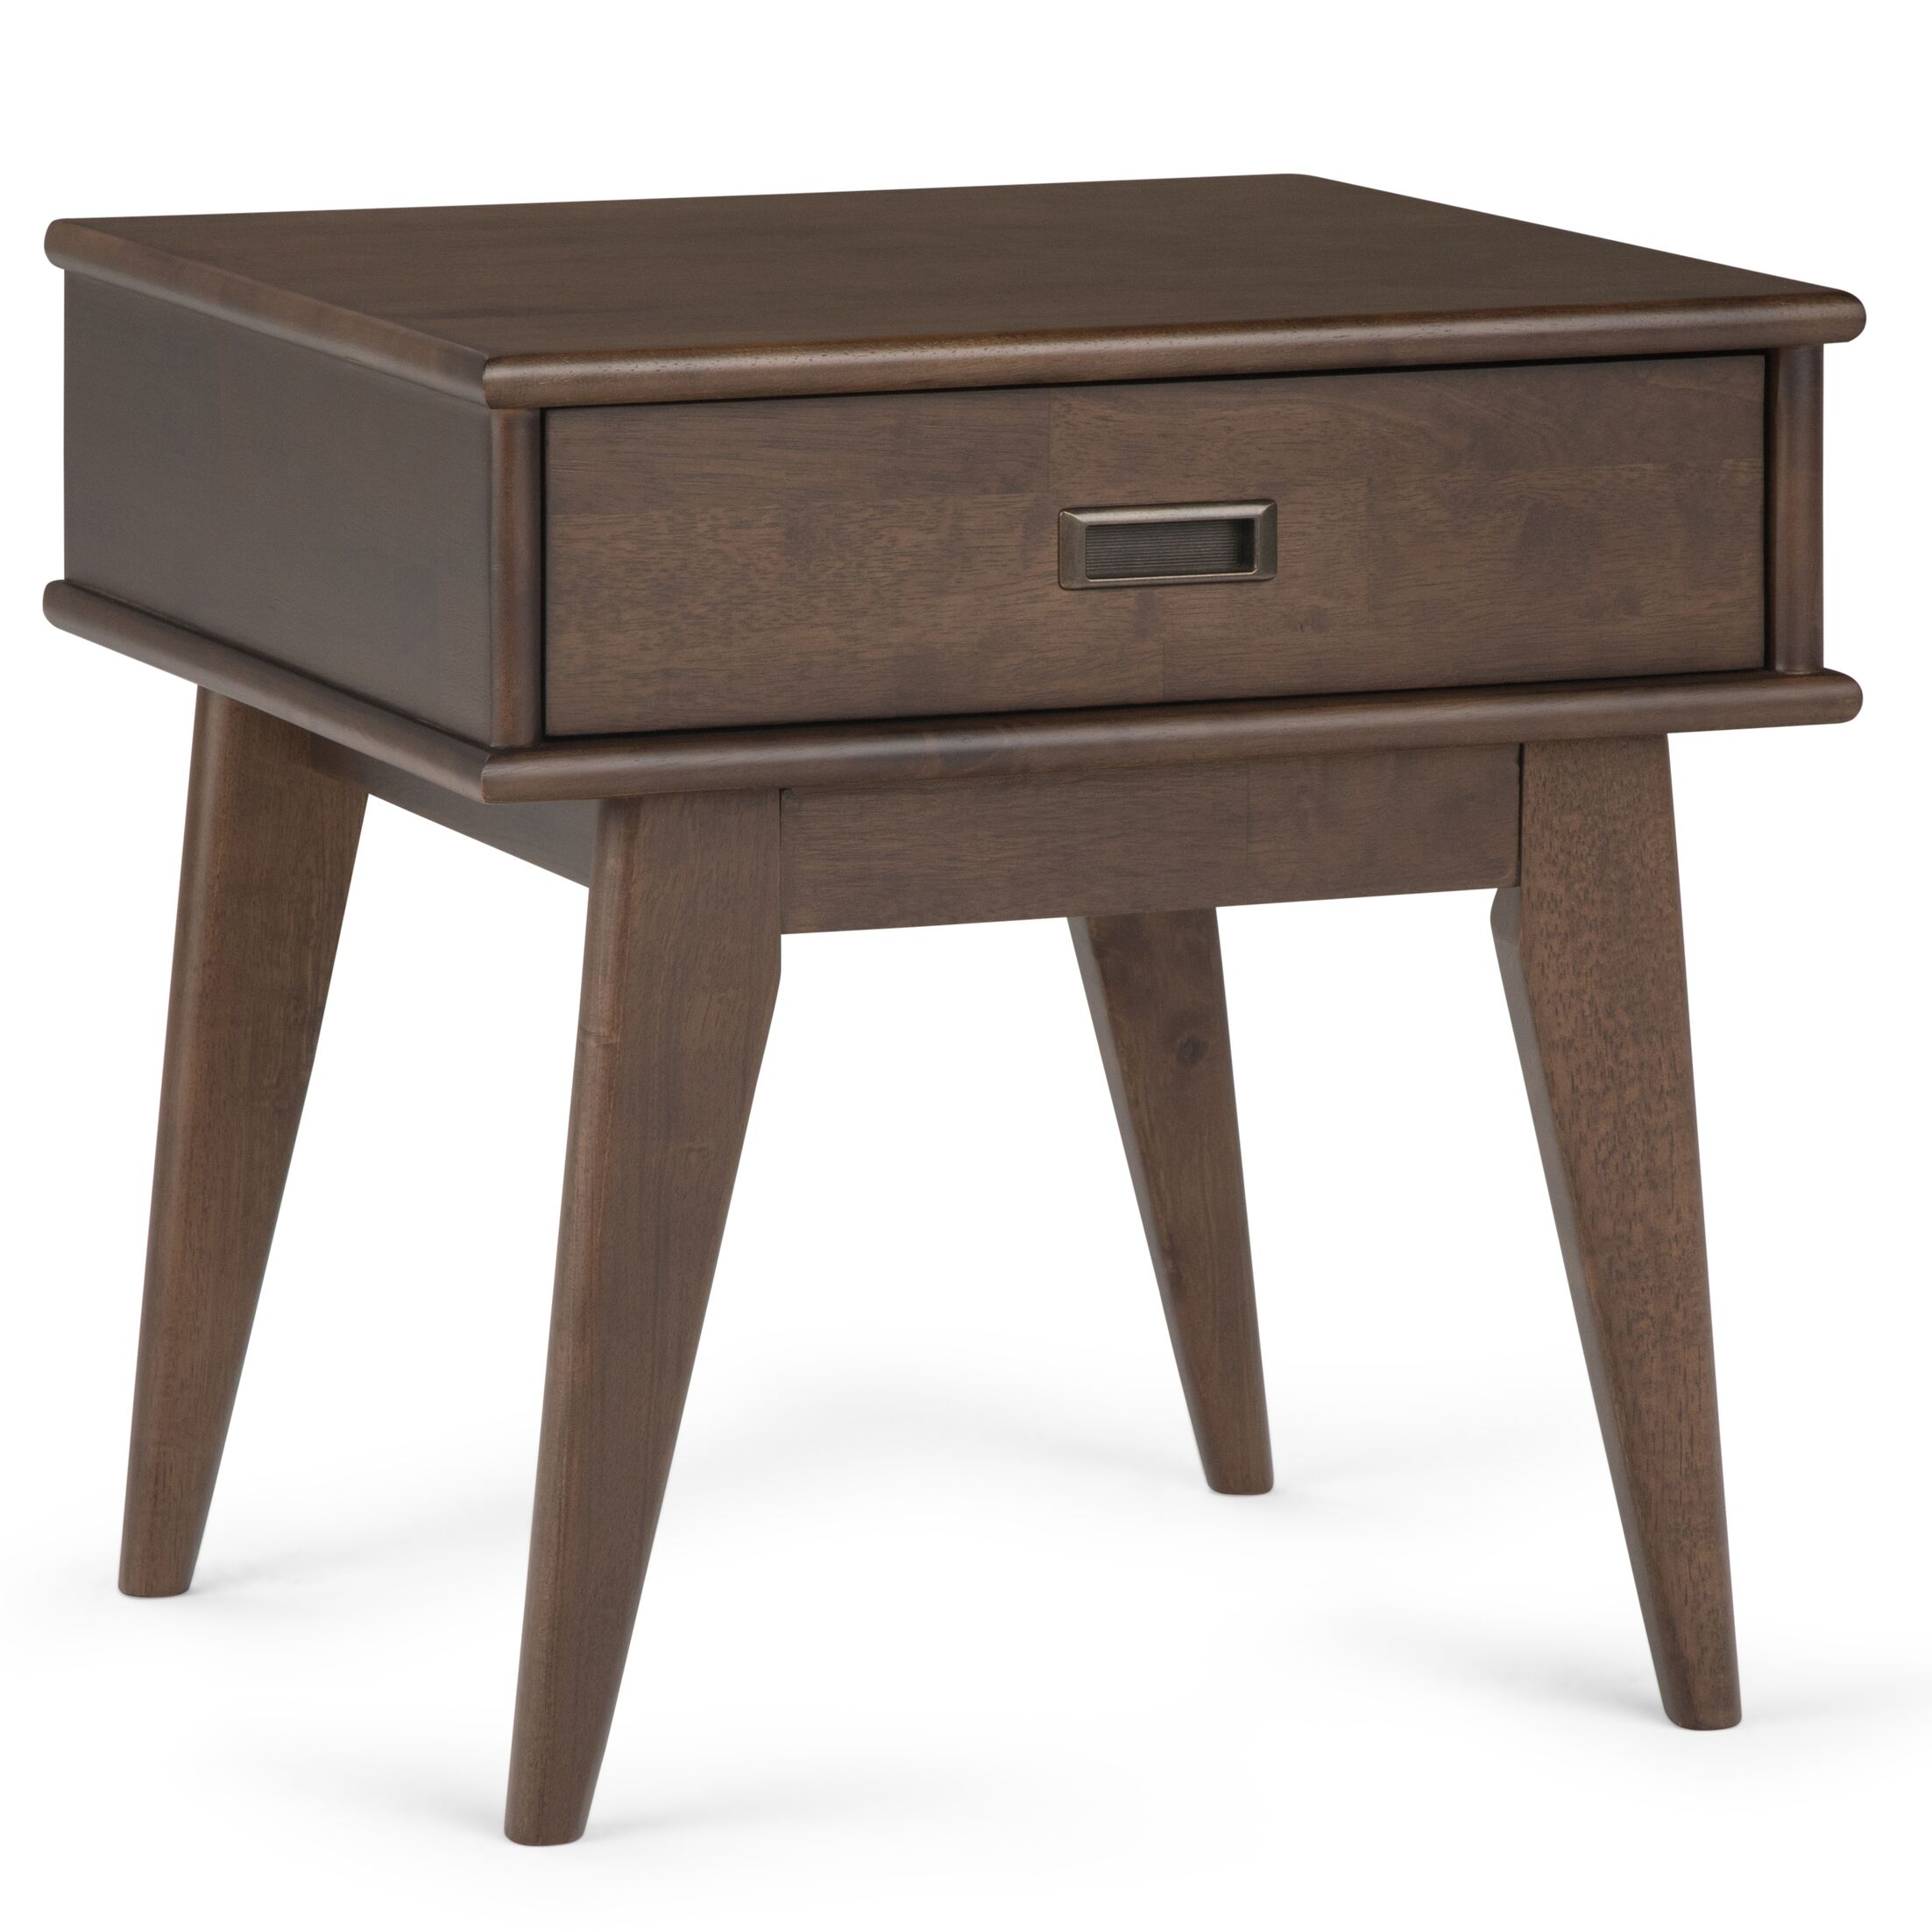 Draper End Table with Storage Color: Walnut Brown